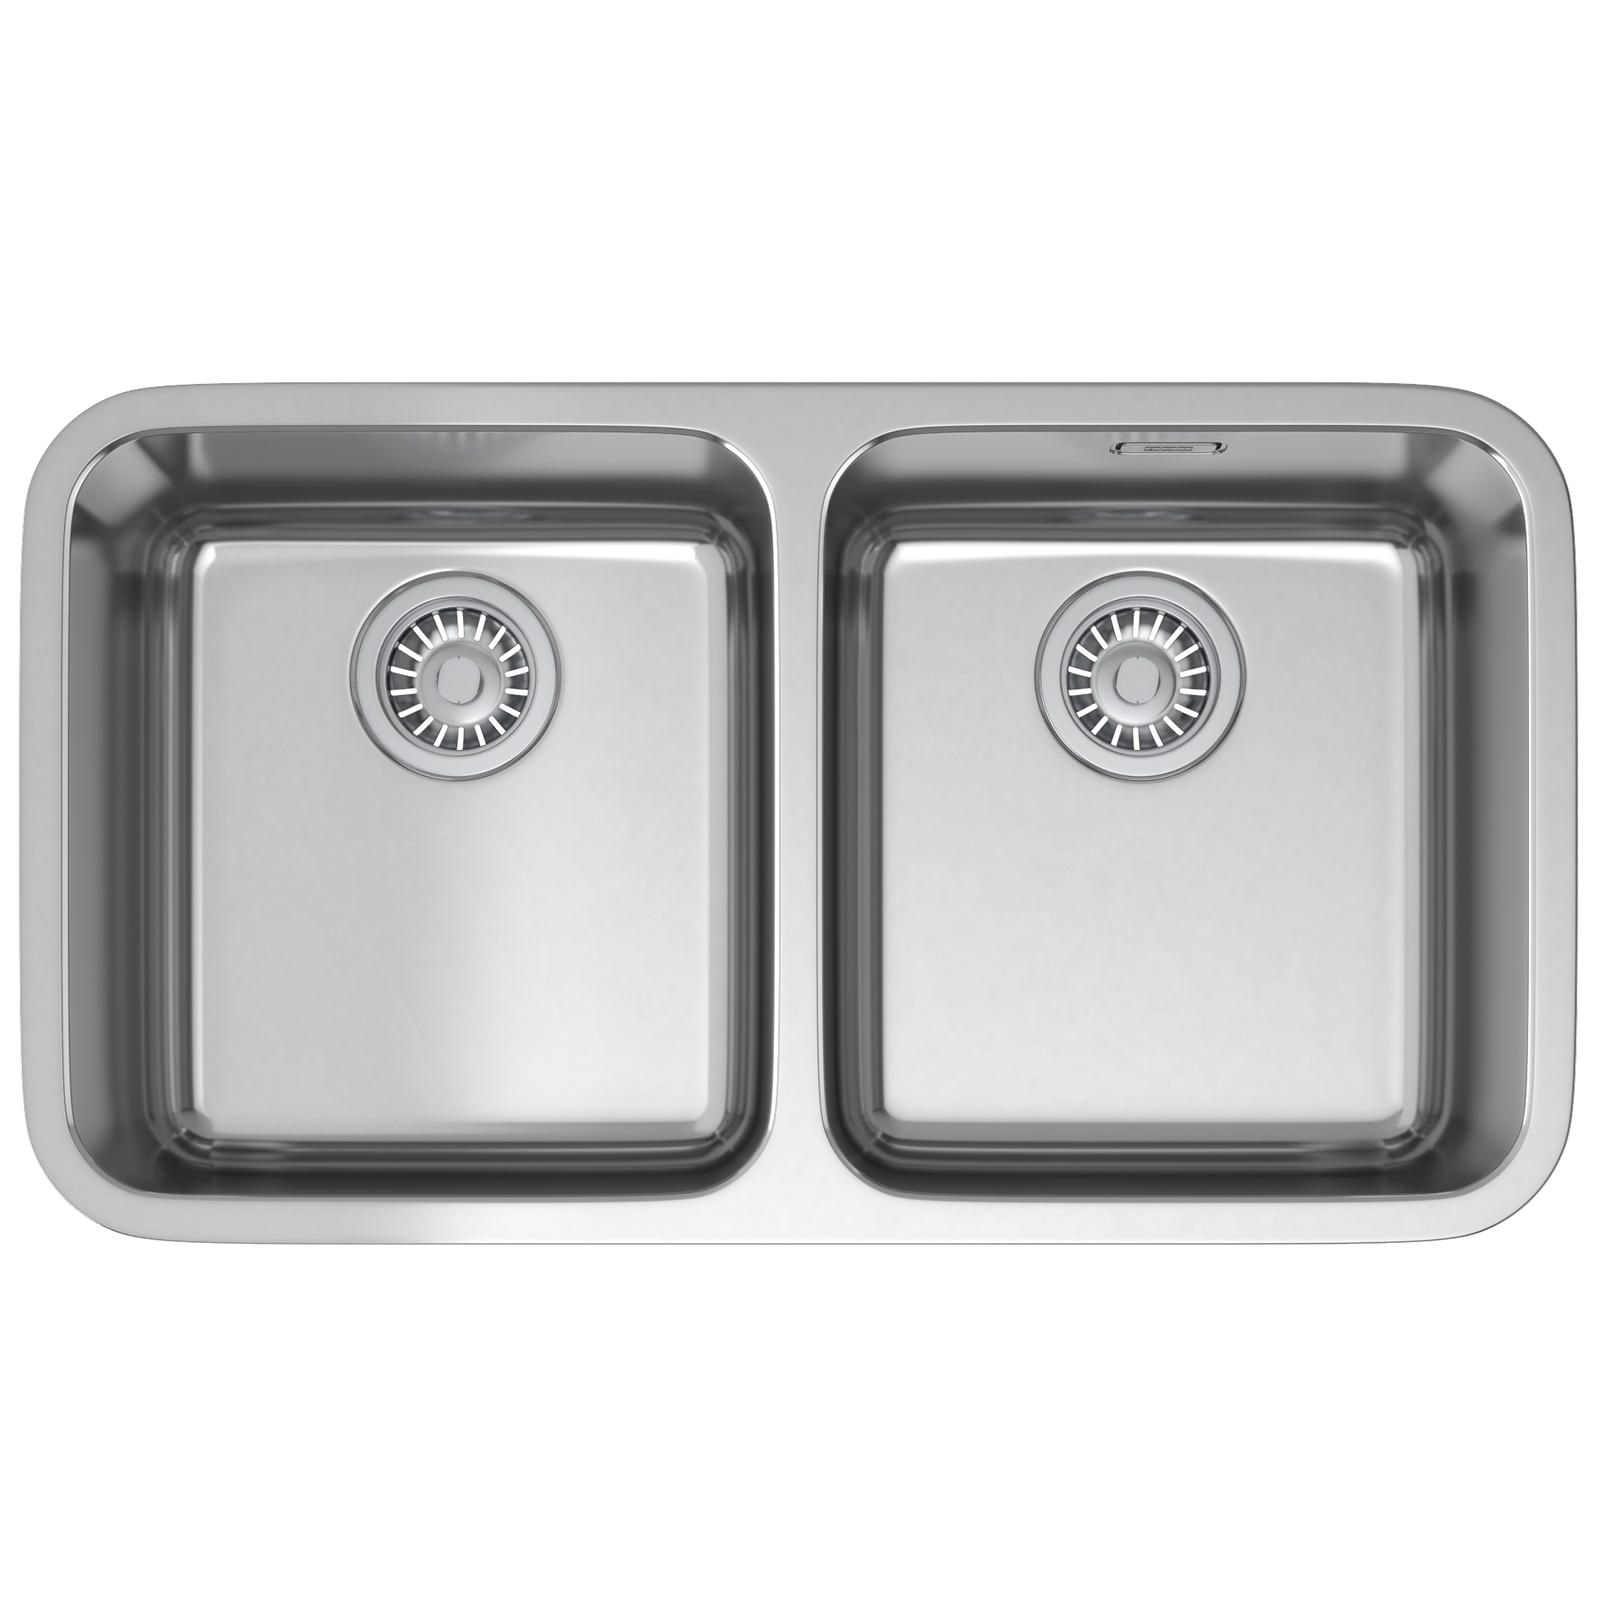 Franke 2 Bowl Sink : ... two bowl sinks franke largo lax 120 36 36 stainless steel 2 0 bowl